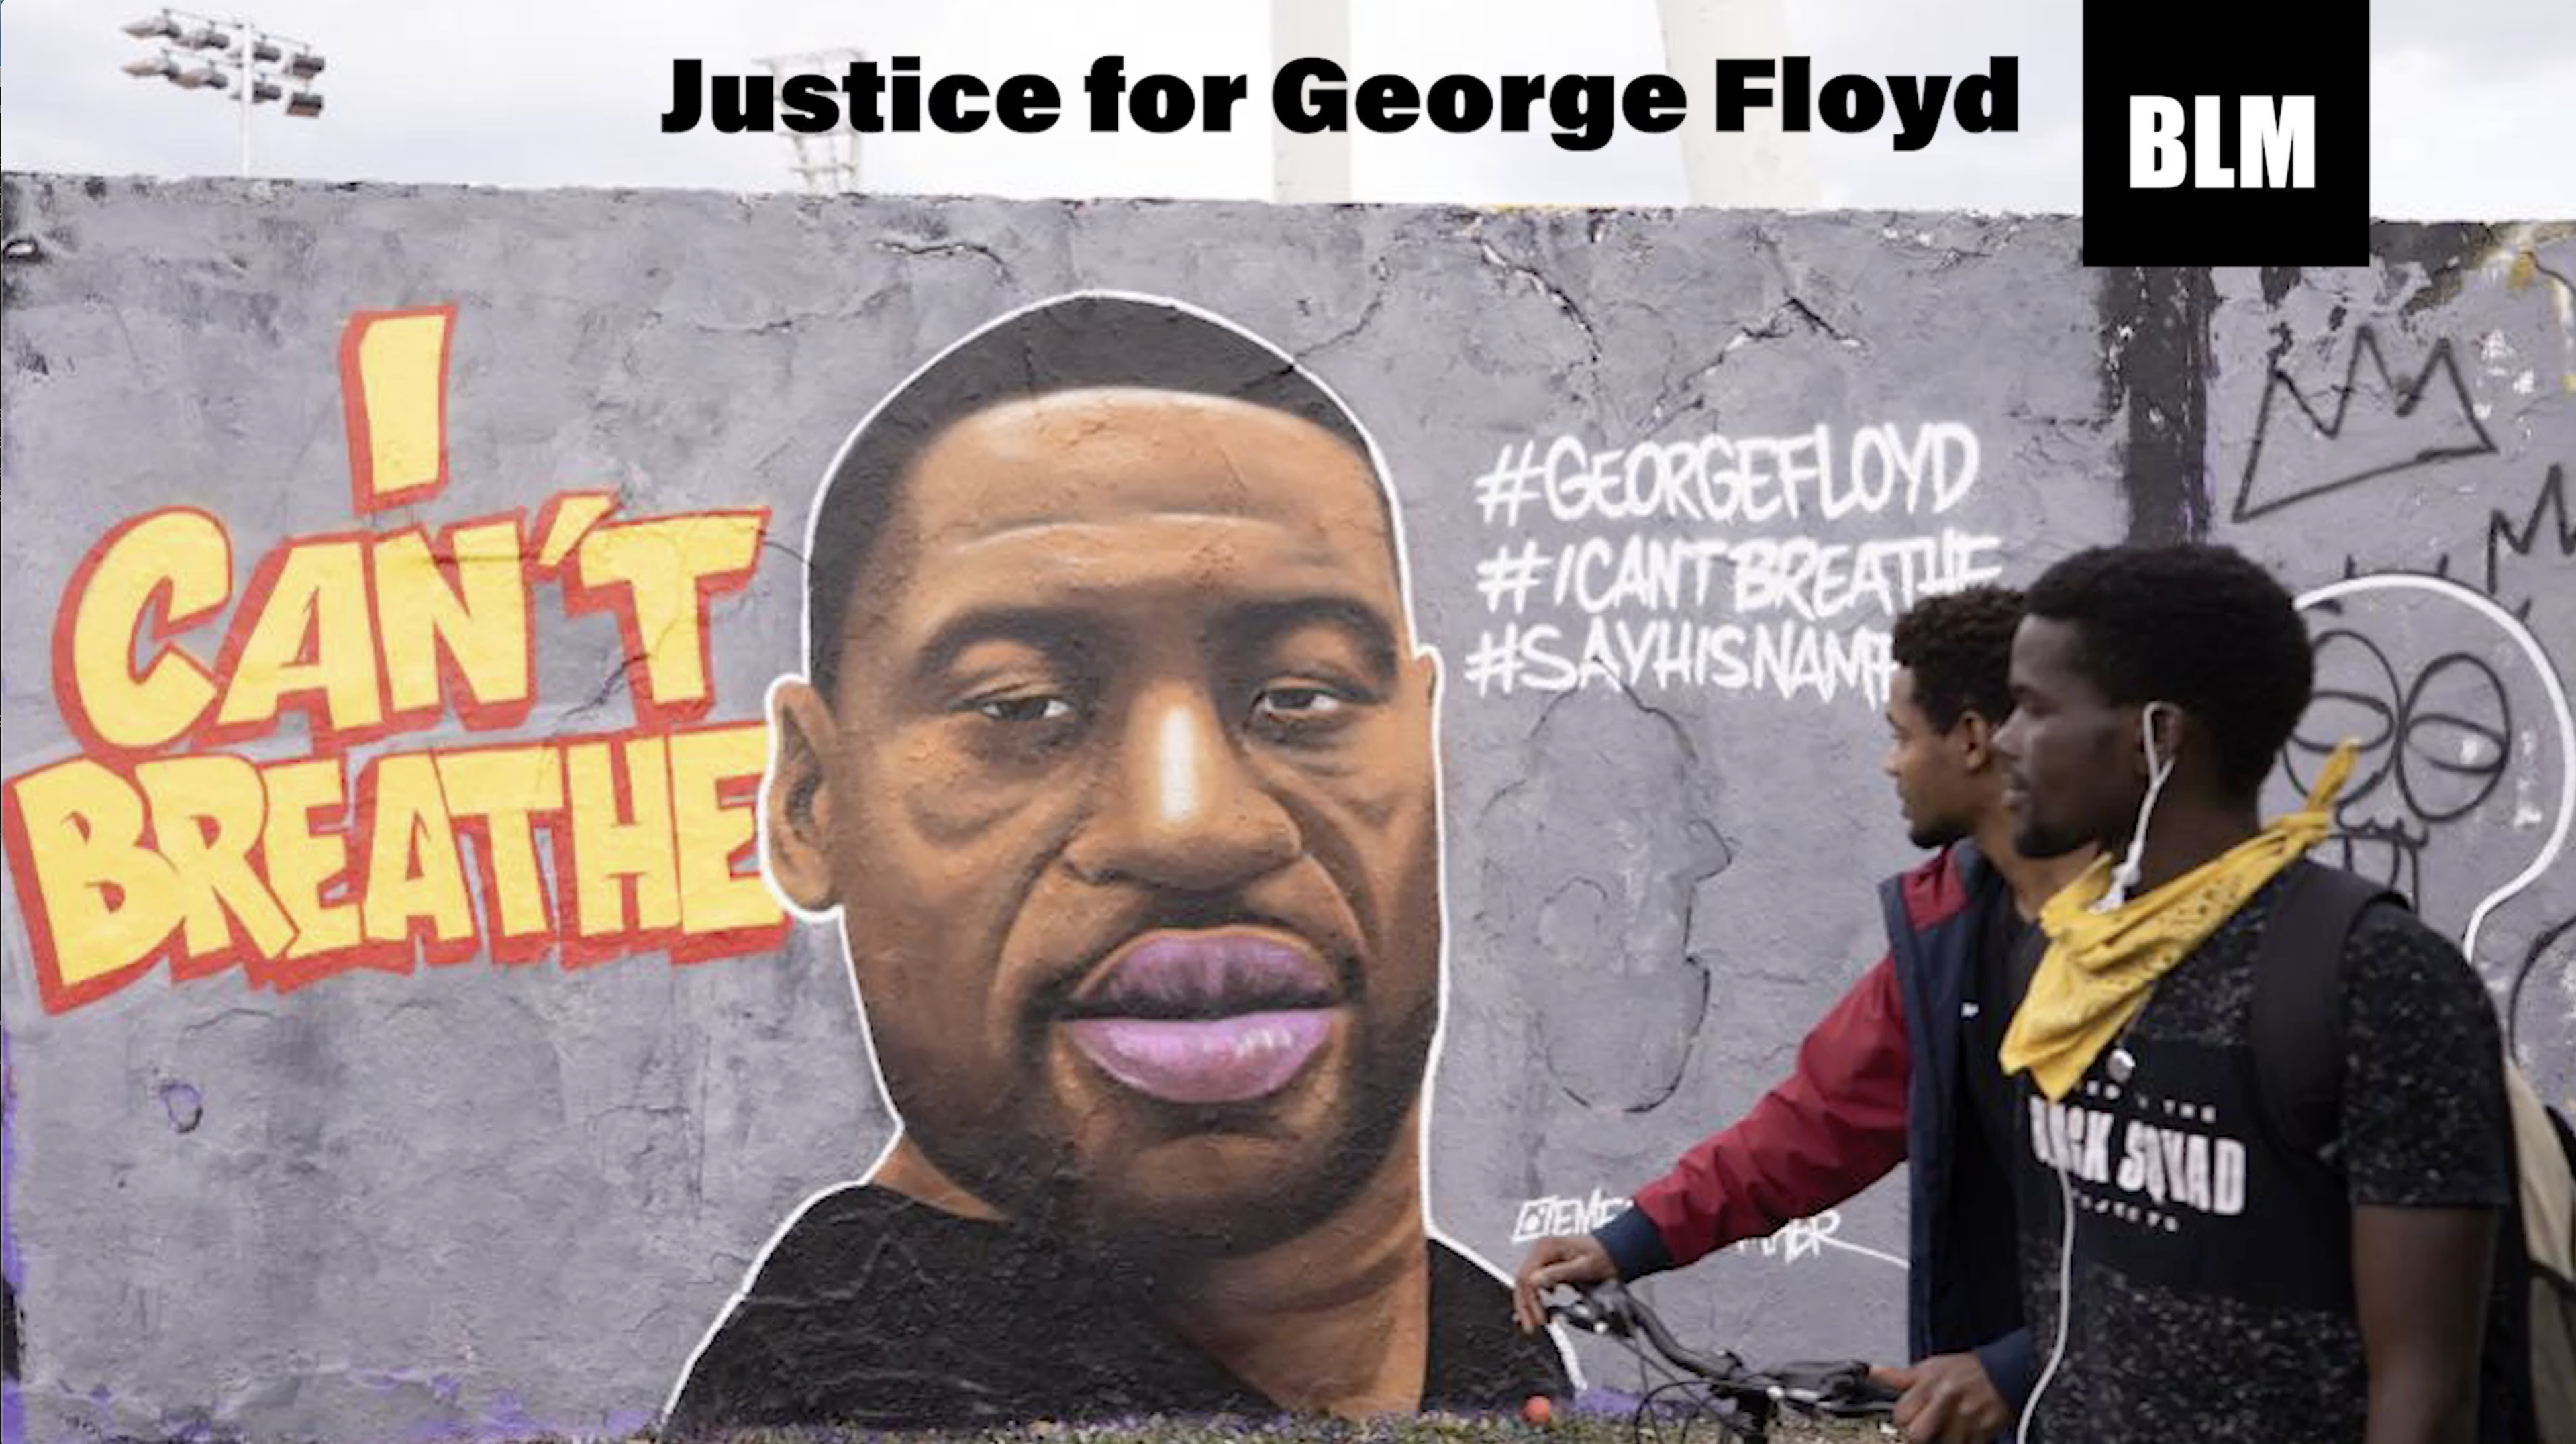 Justice for George Floyd! Protest London Sunday 31 May Trafalgar Square 1pm